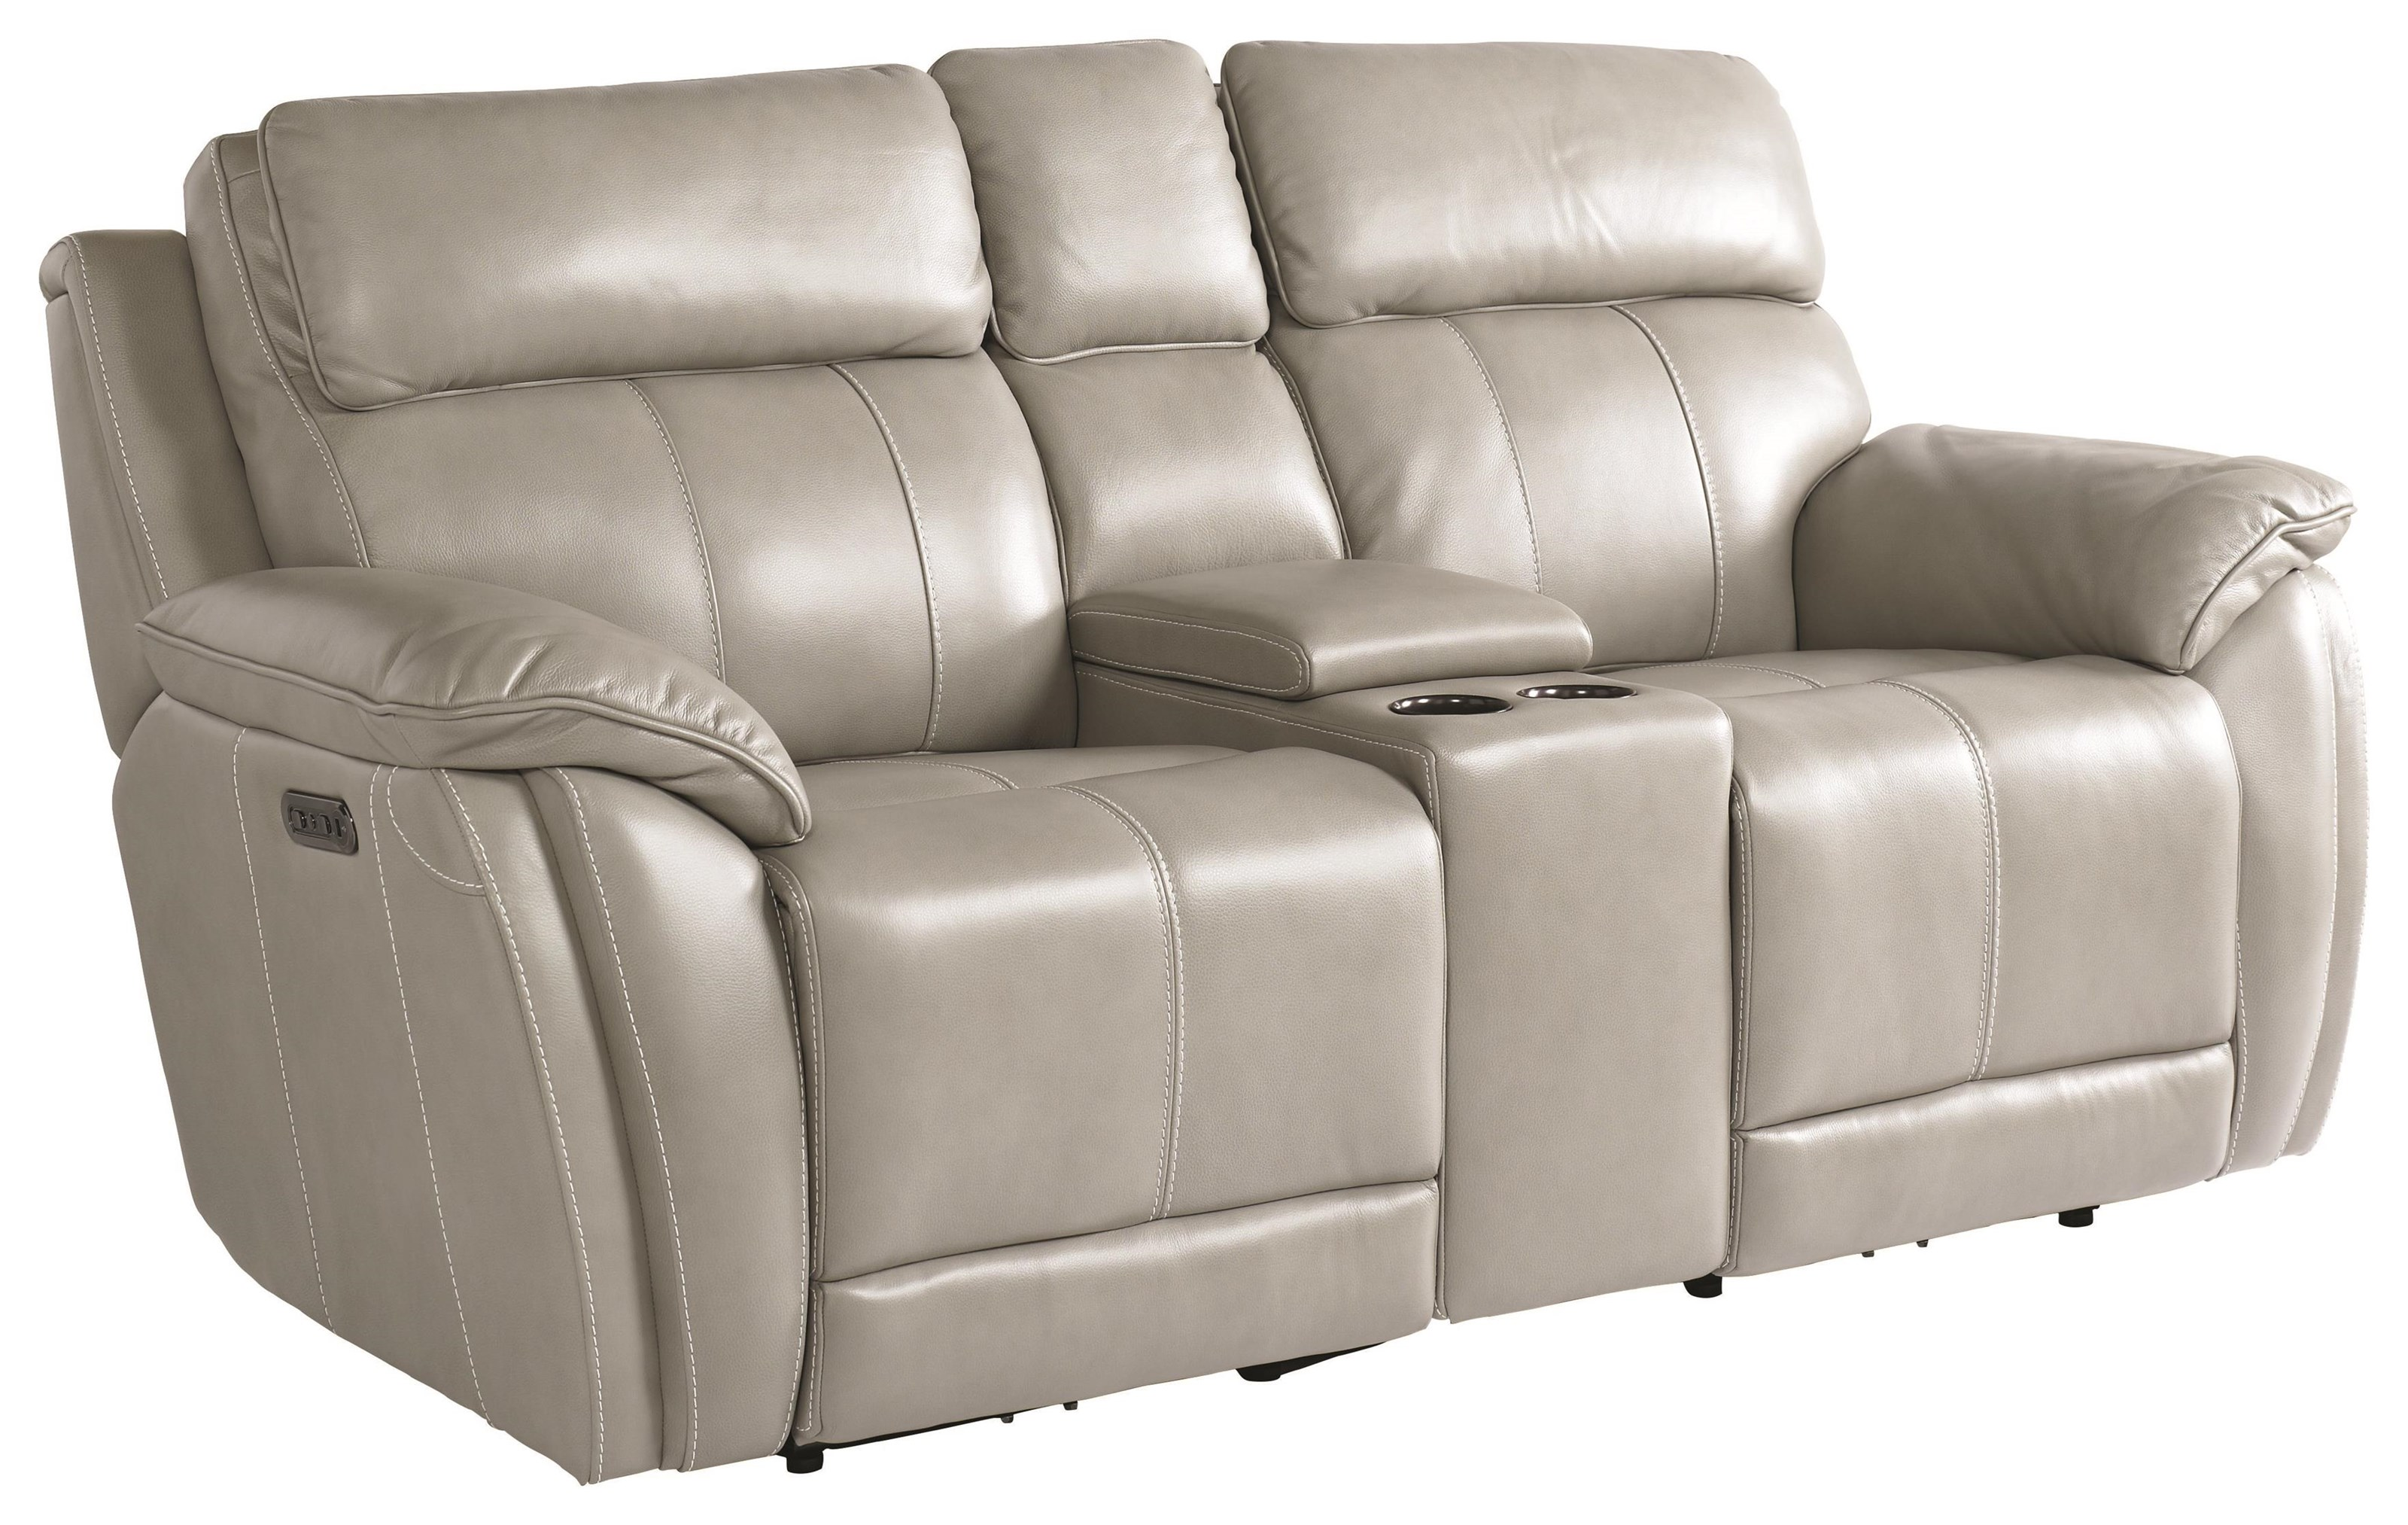 Levitate Power Loveseat With Console by Bassett at Johnny Janosik